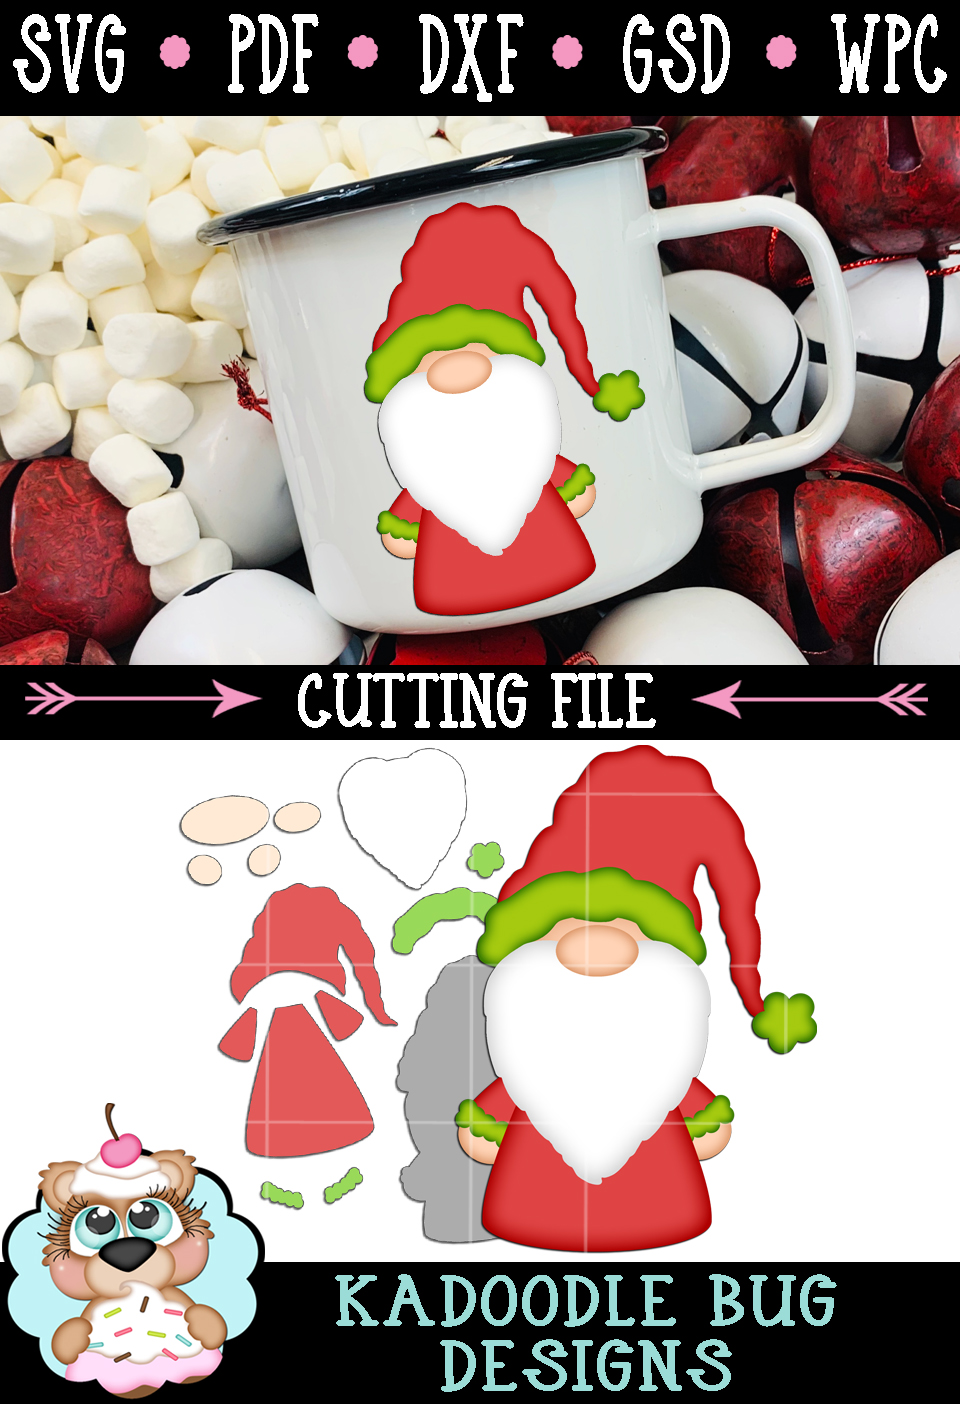 Christmas Gnome Cut File - SVG PDF DXF GSD WPC example image 3